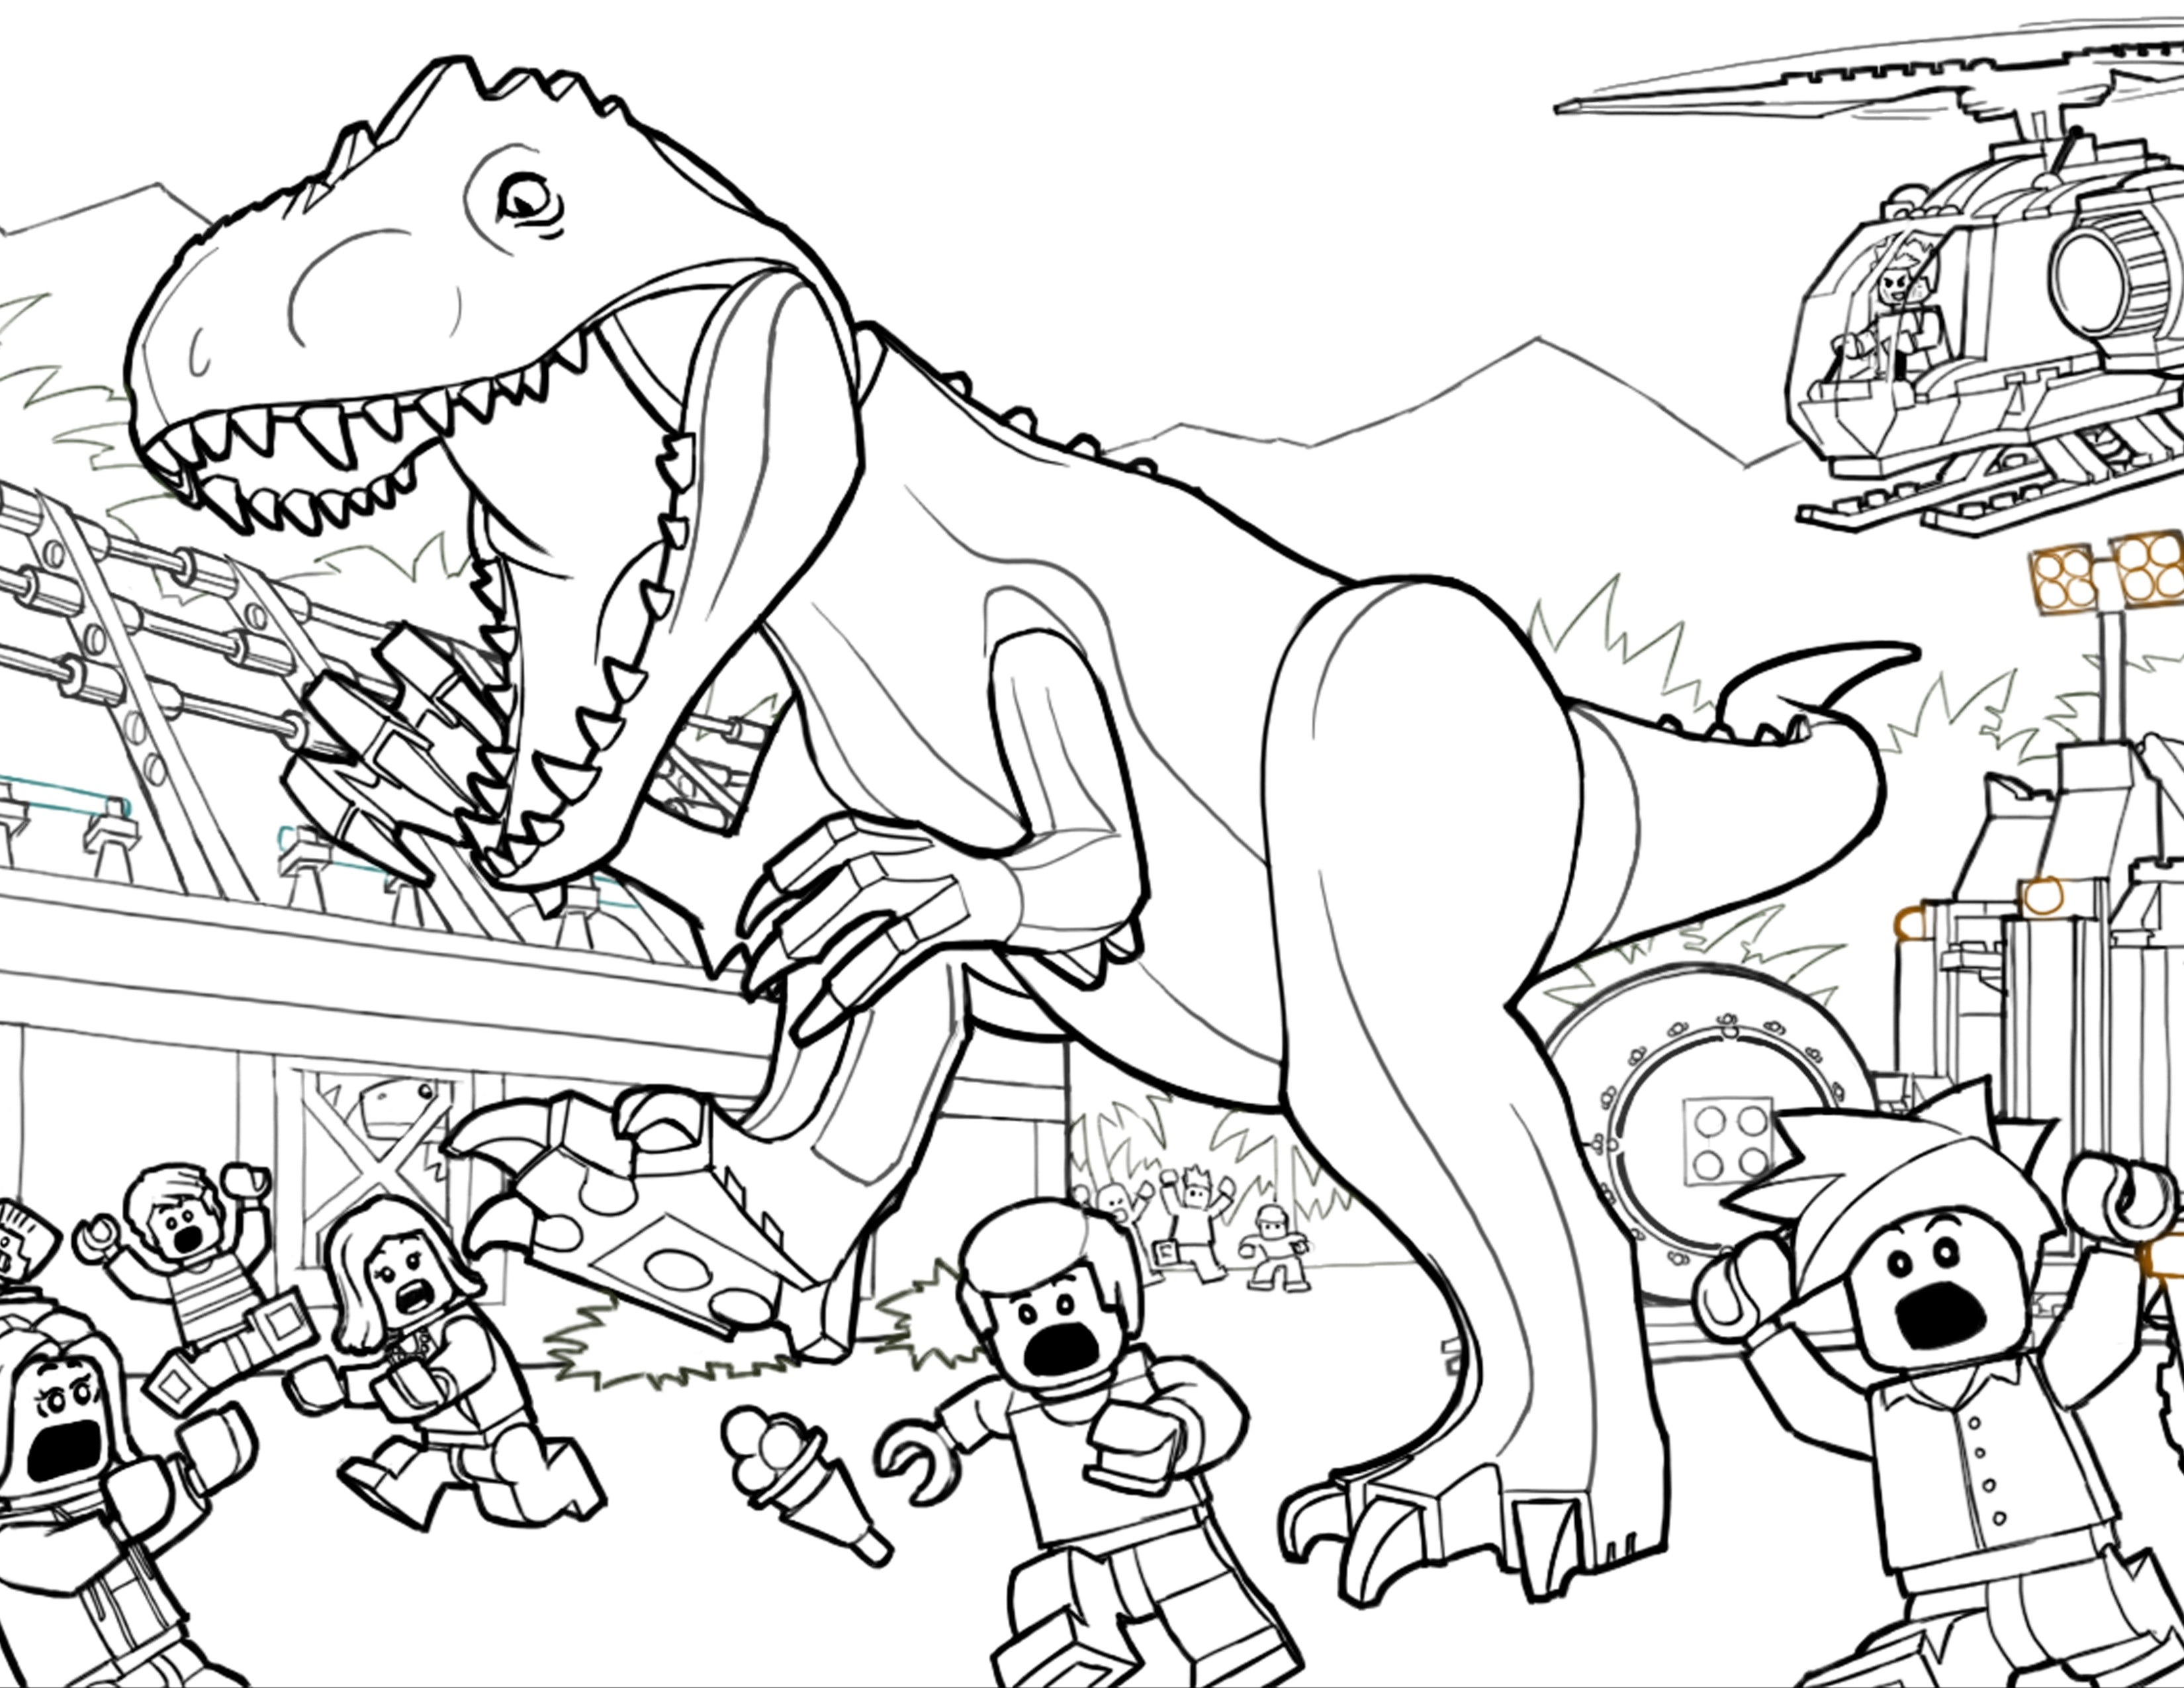 3300x2550 Jurassic World Coloring Pages Online New Superb Lego Coloring